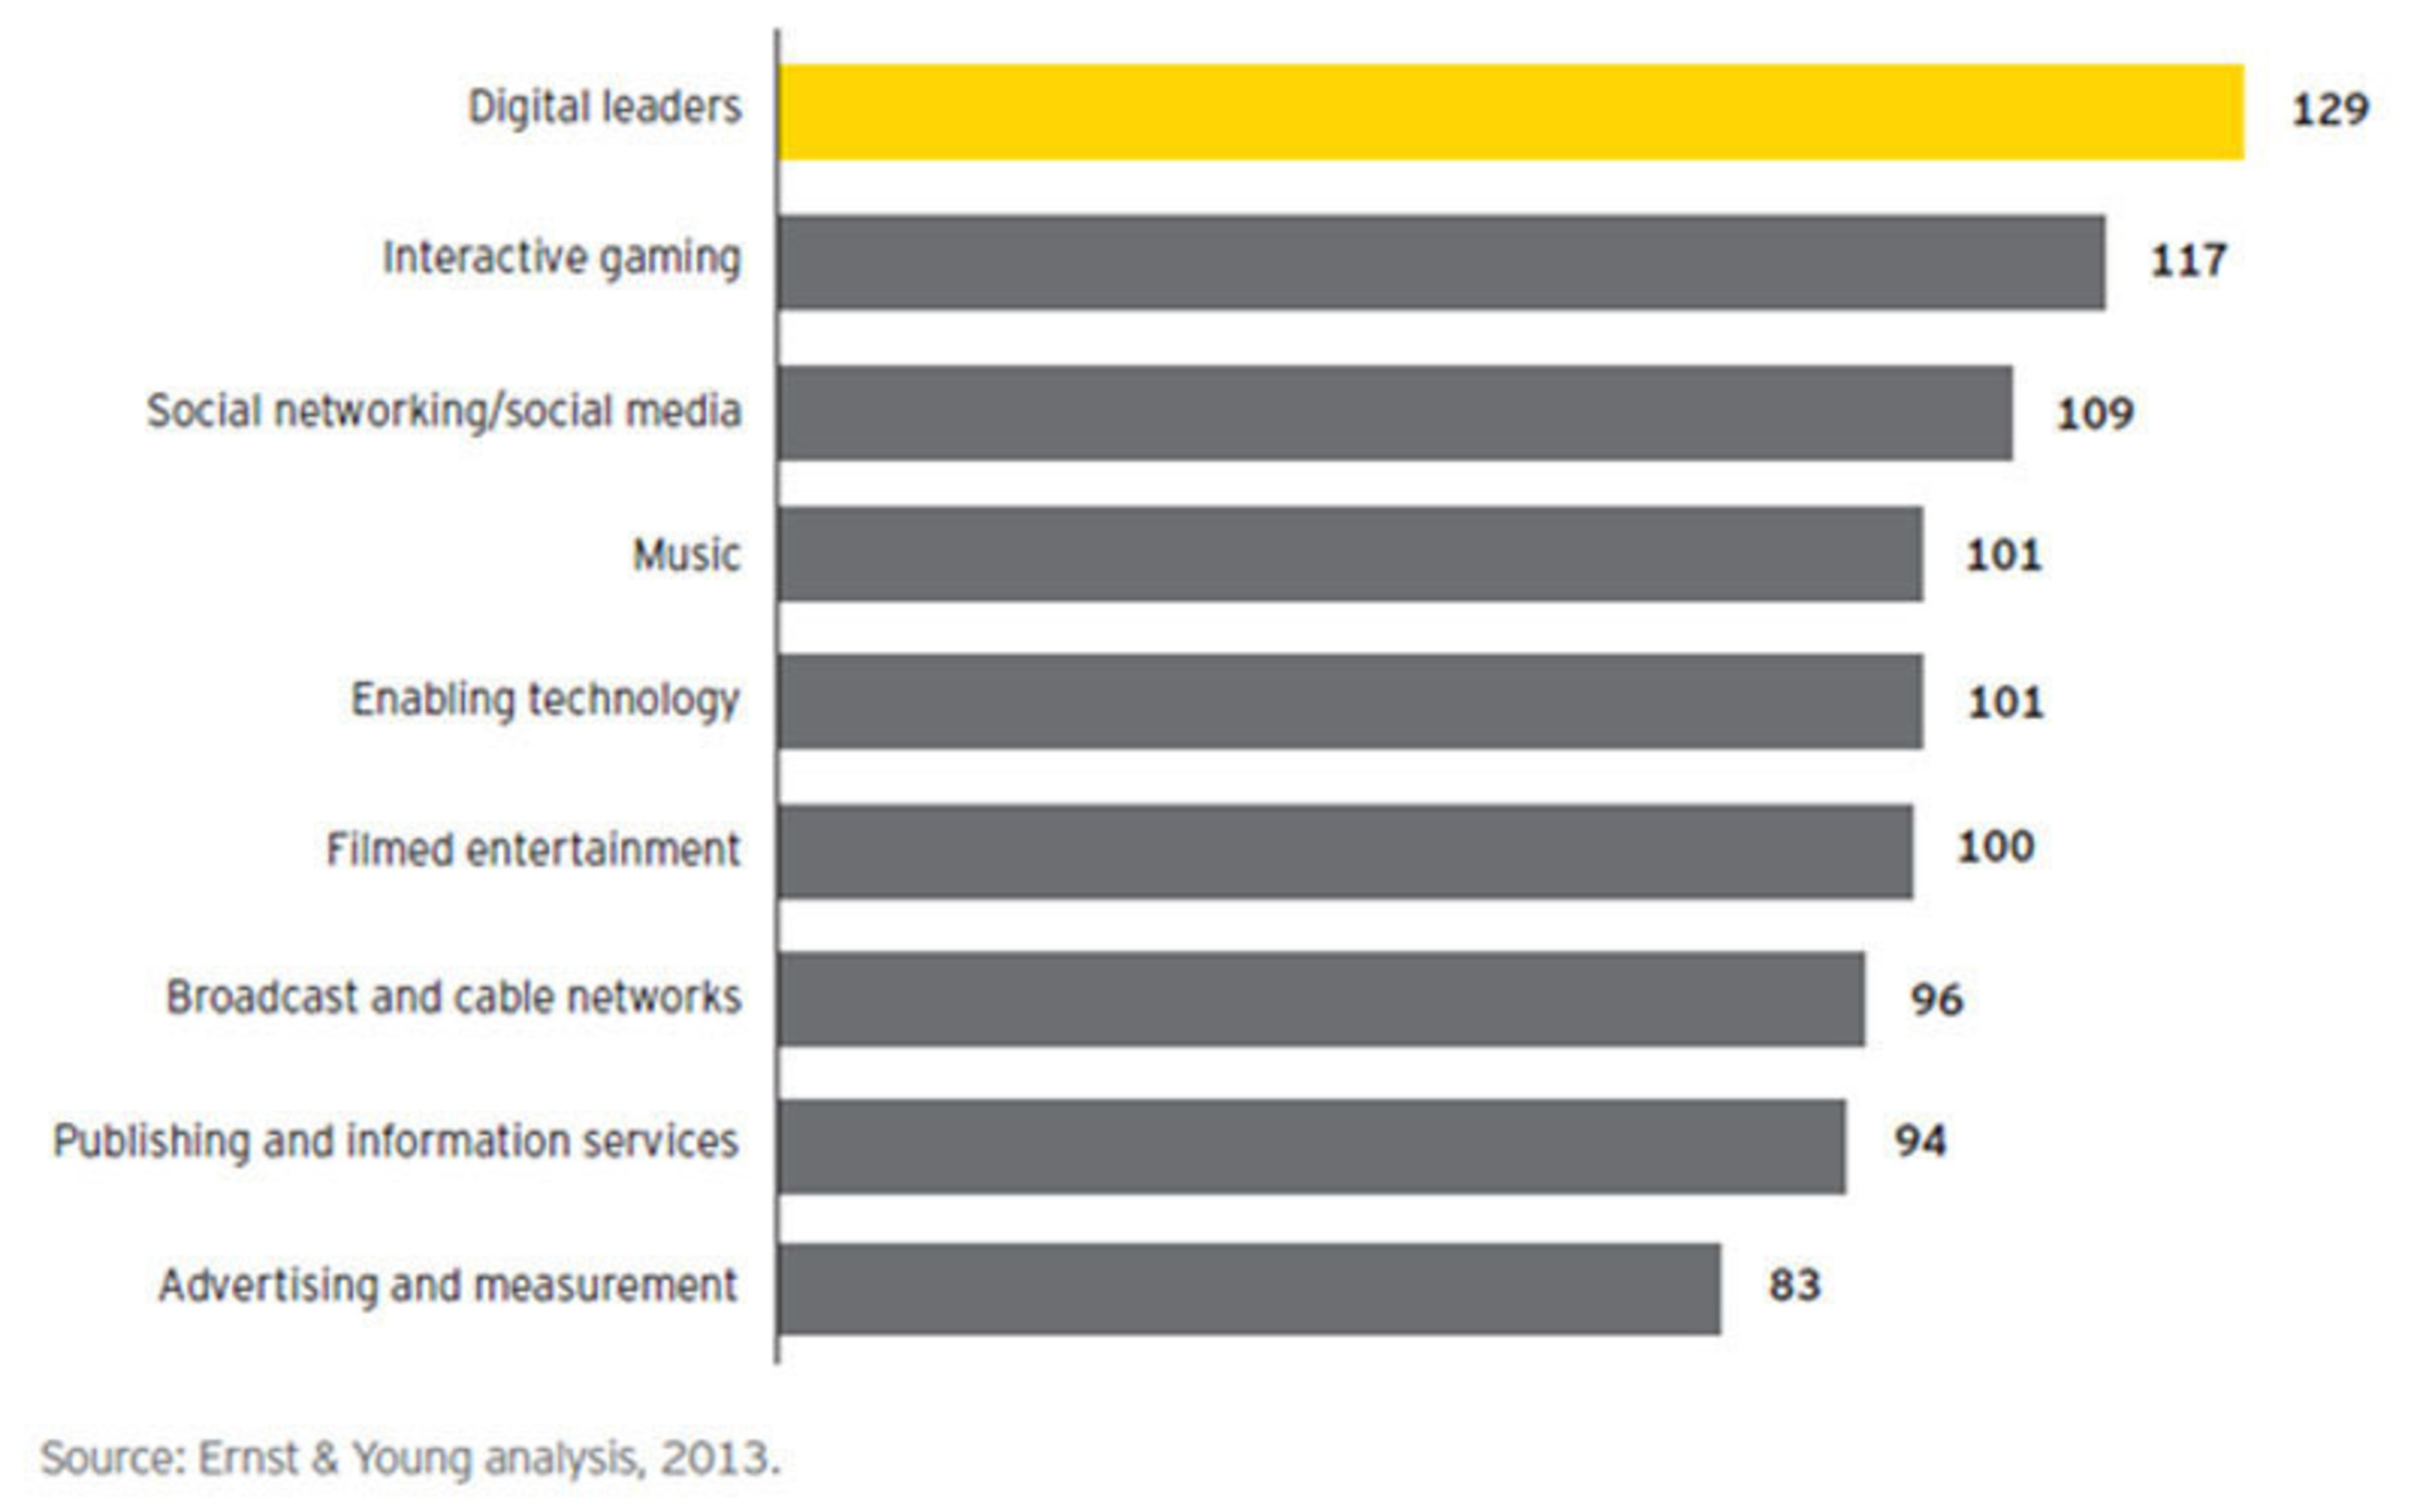 Media companies' digital revenues will overtake traditional revenues by 2015